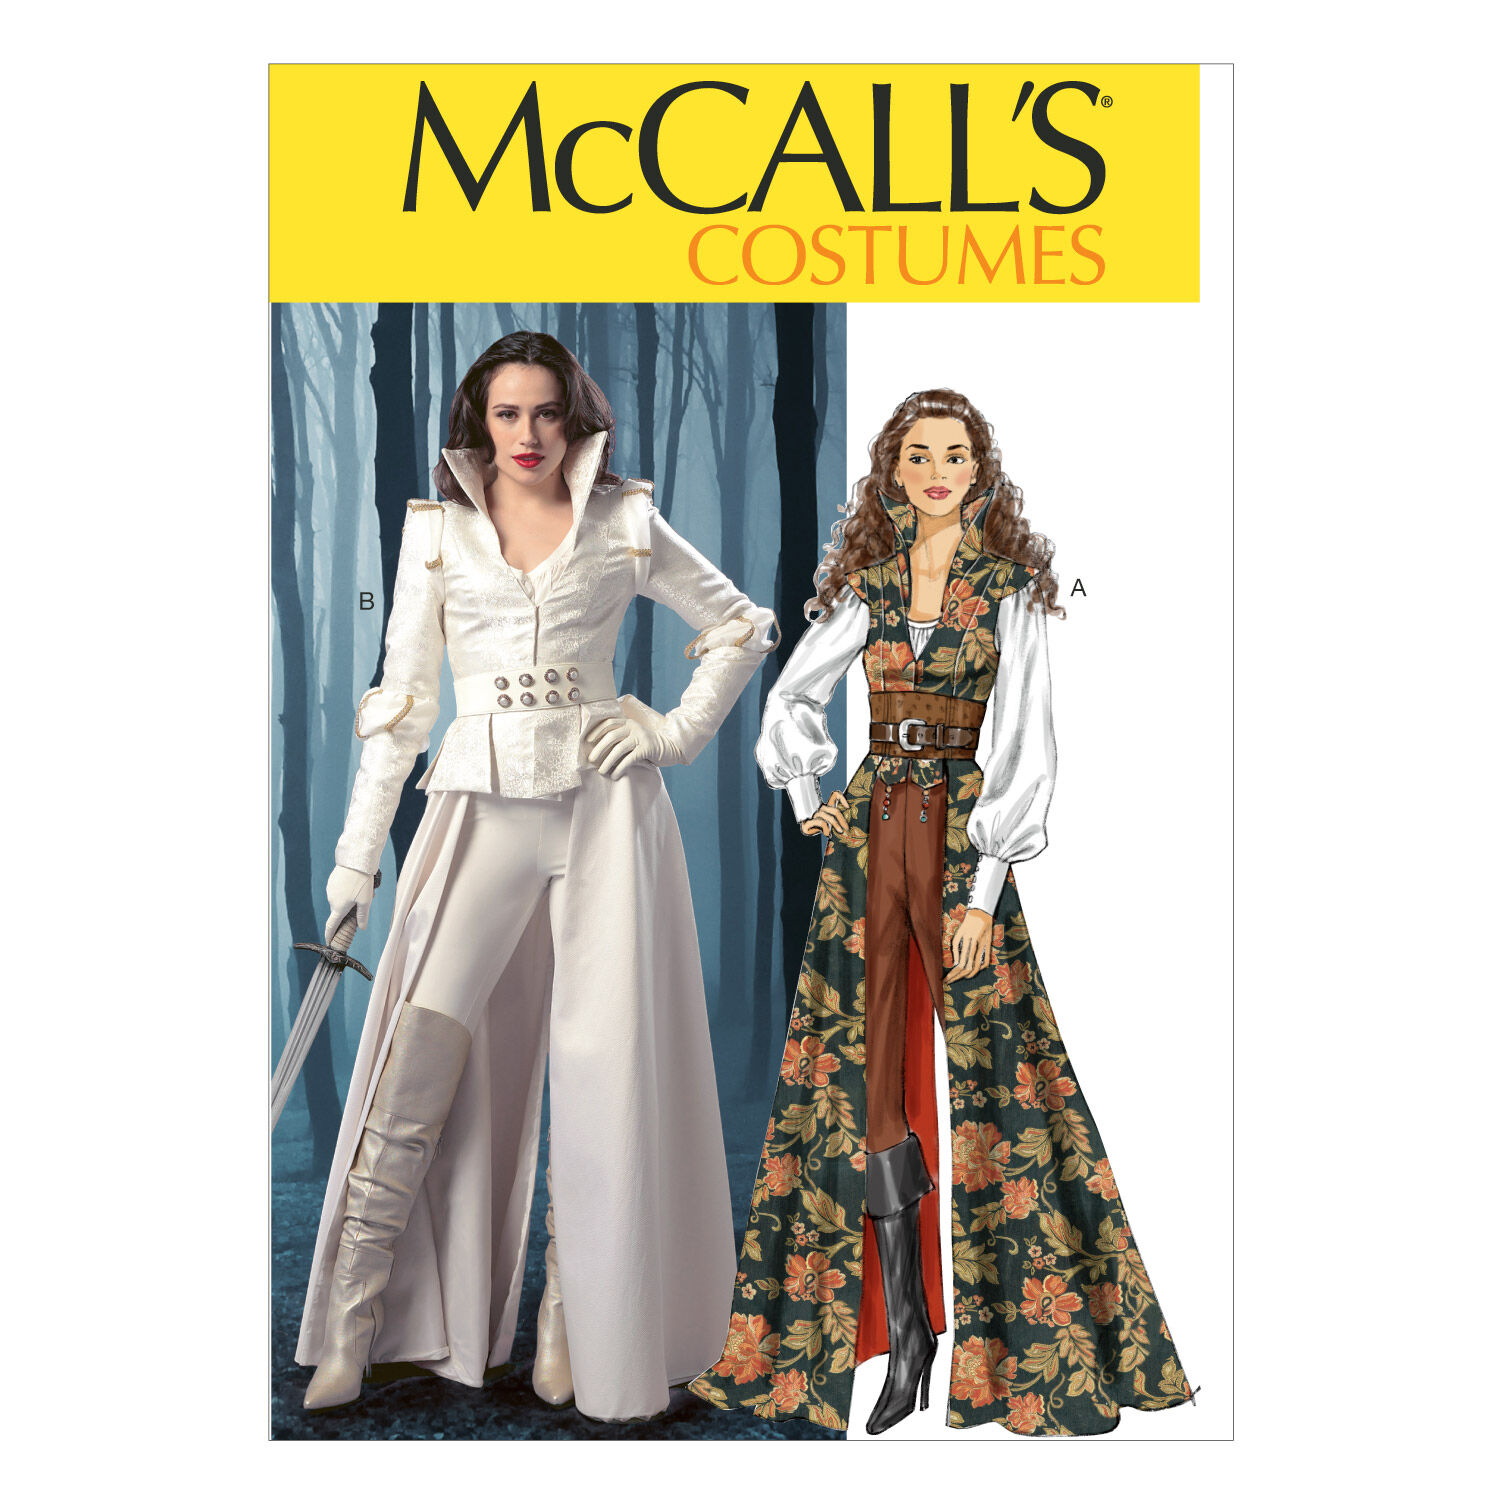 Steampunk Sewing Patterns- Dresses, Coats, Plus Sizes, Men's Patterns McCalls - Pattern M6819 - Collared Coat Top Corset and Belt - Sizes 14-16-18-20 - Costumes - At JOANN Fabrics  Crafts $18.95 AT vintagedancer.com